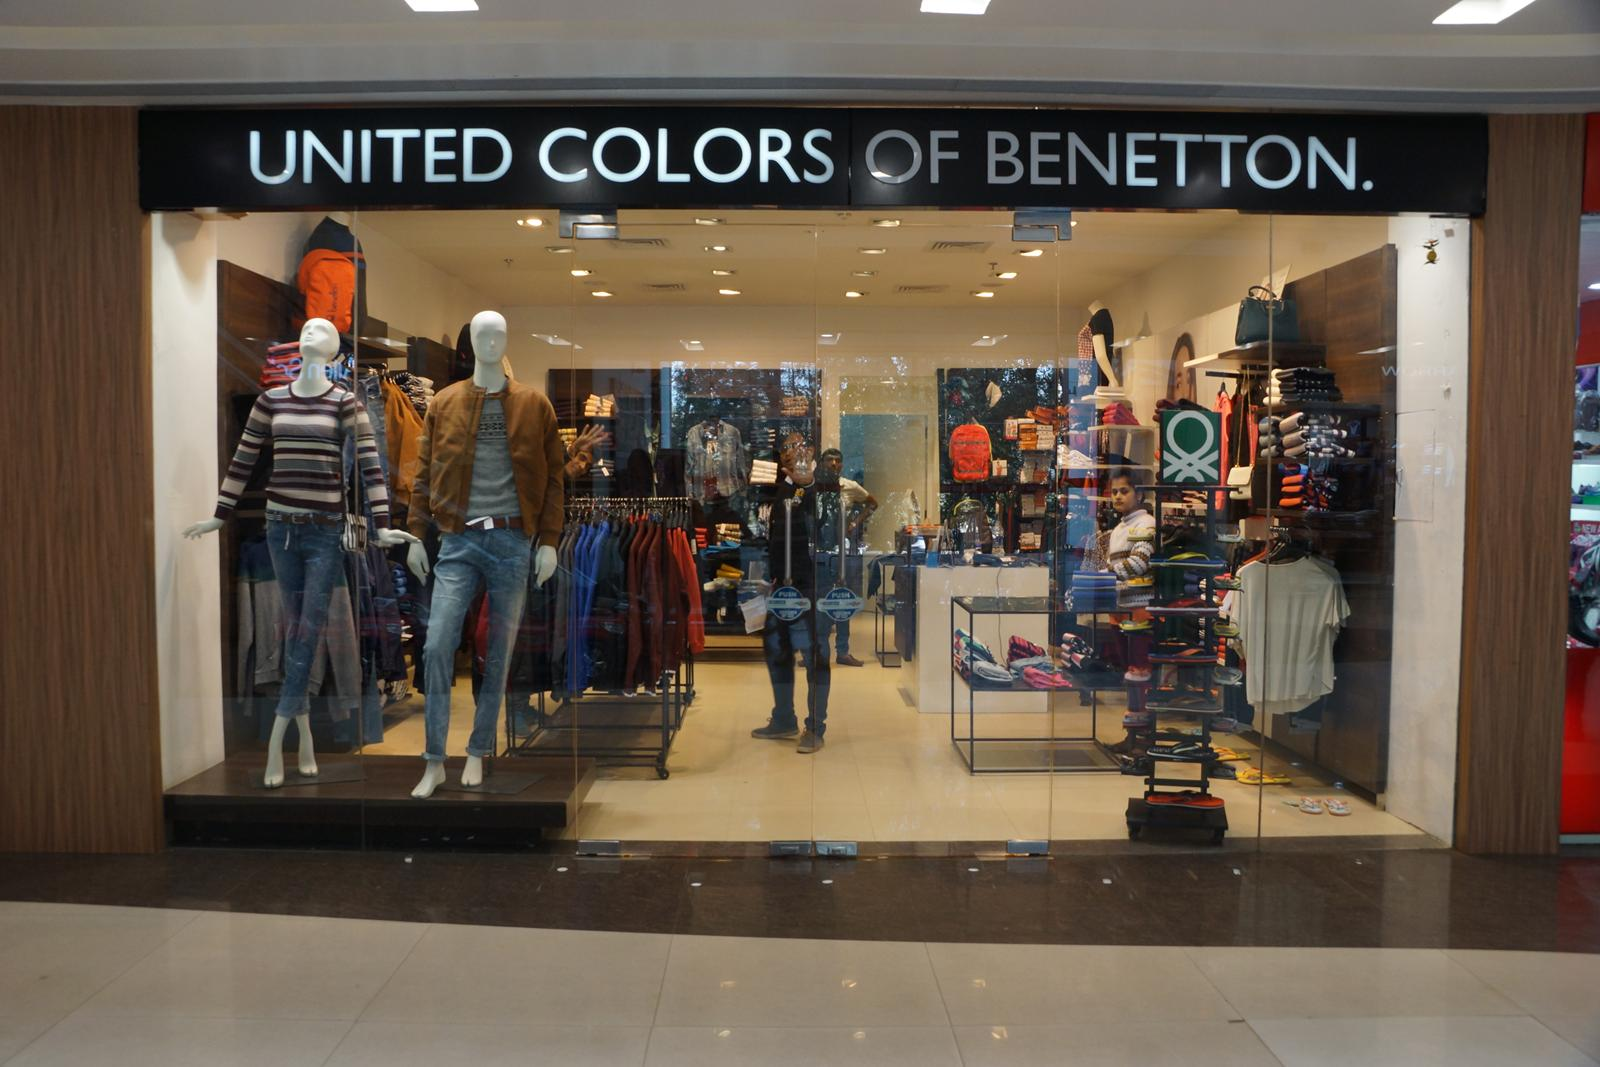 United colors of benetton bokaro mall for Benetton we are colors